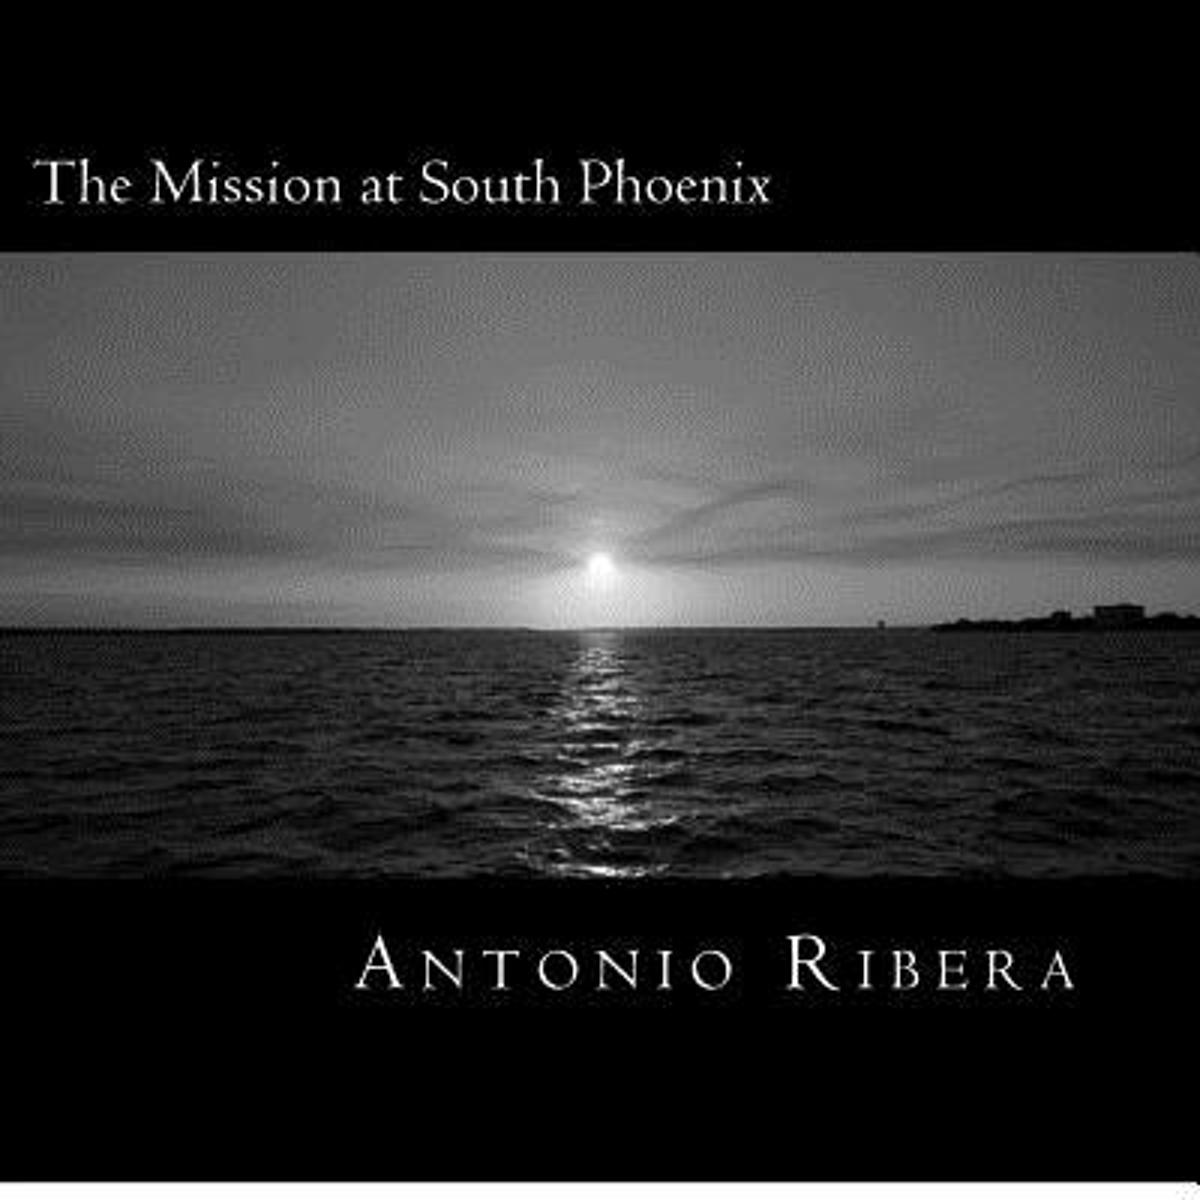 The Mission at South Phoenix